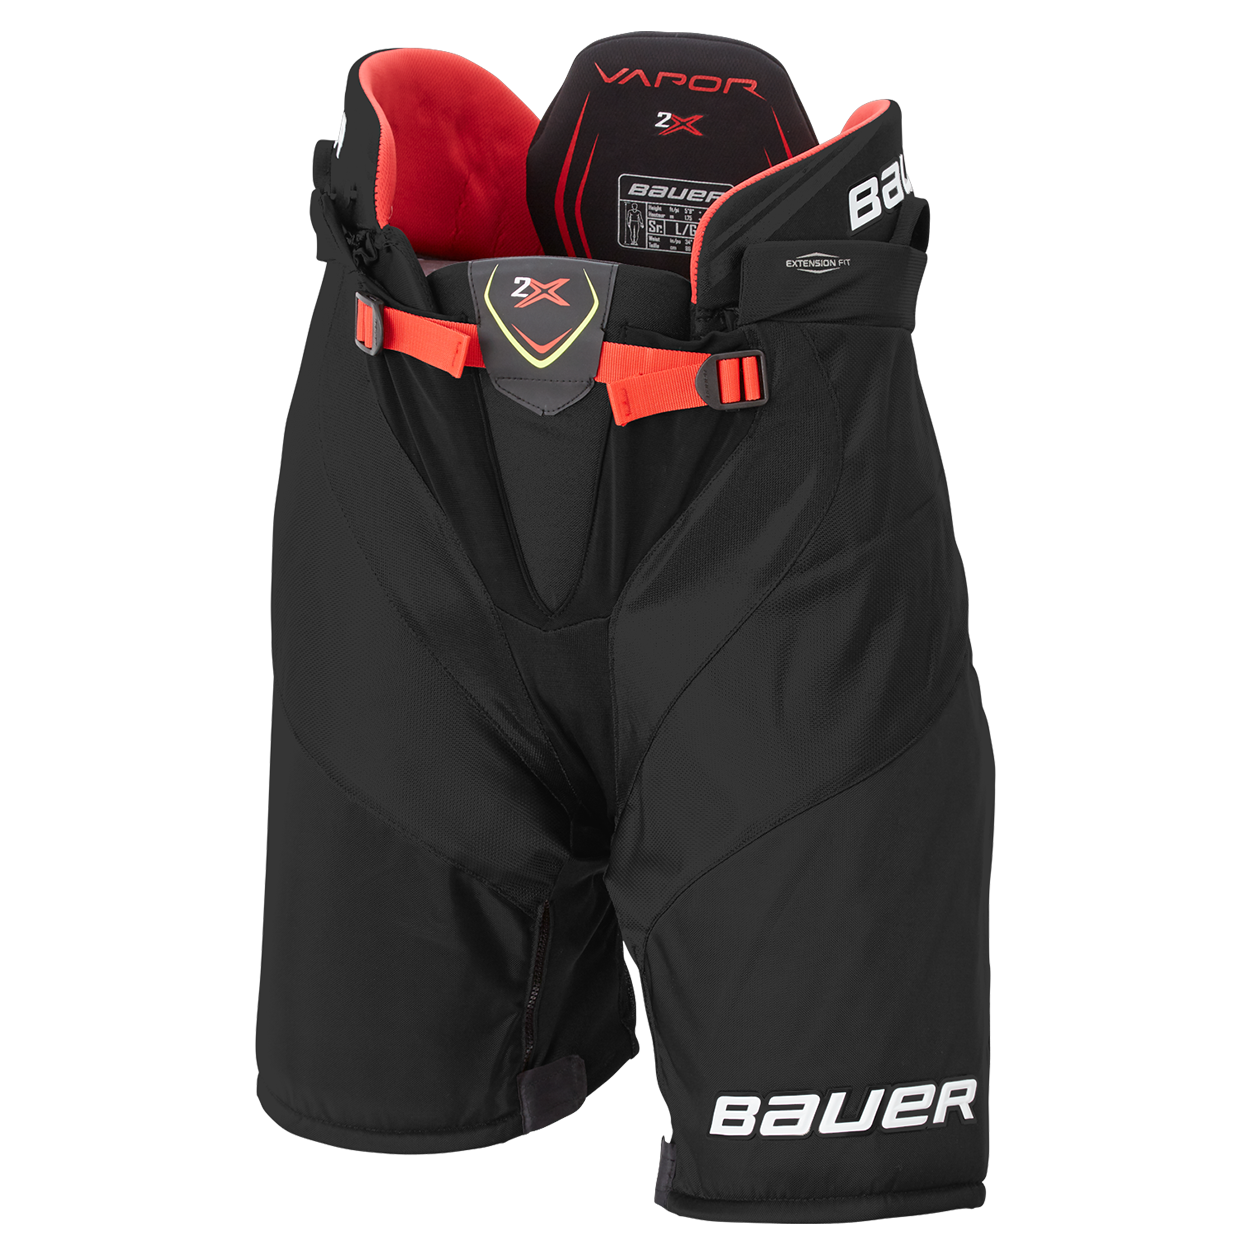 VAPOR 2X Pants Senior,Schwarz,Medium